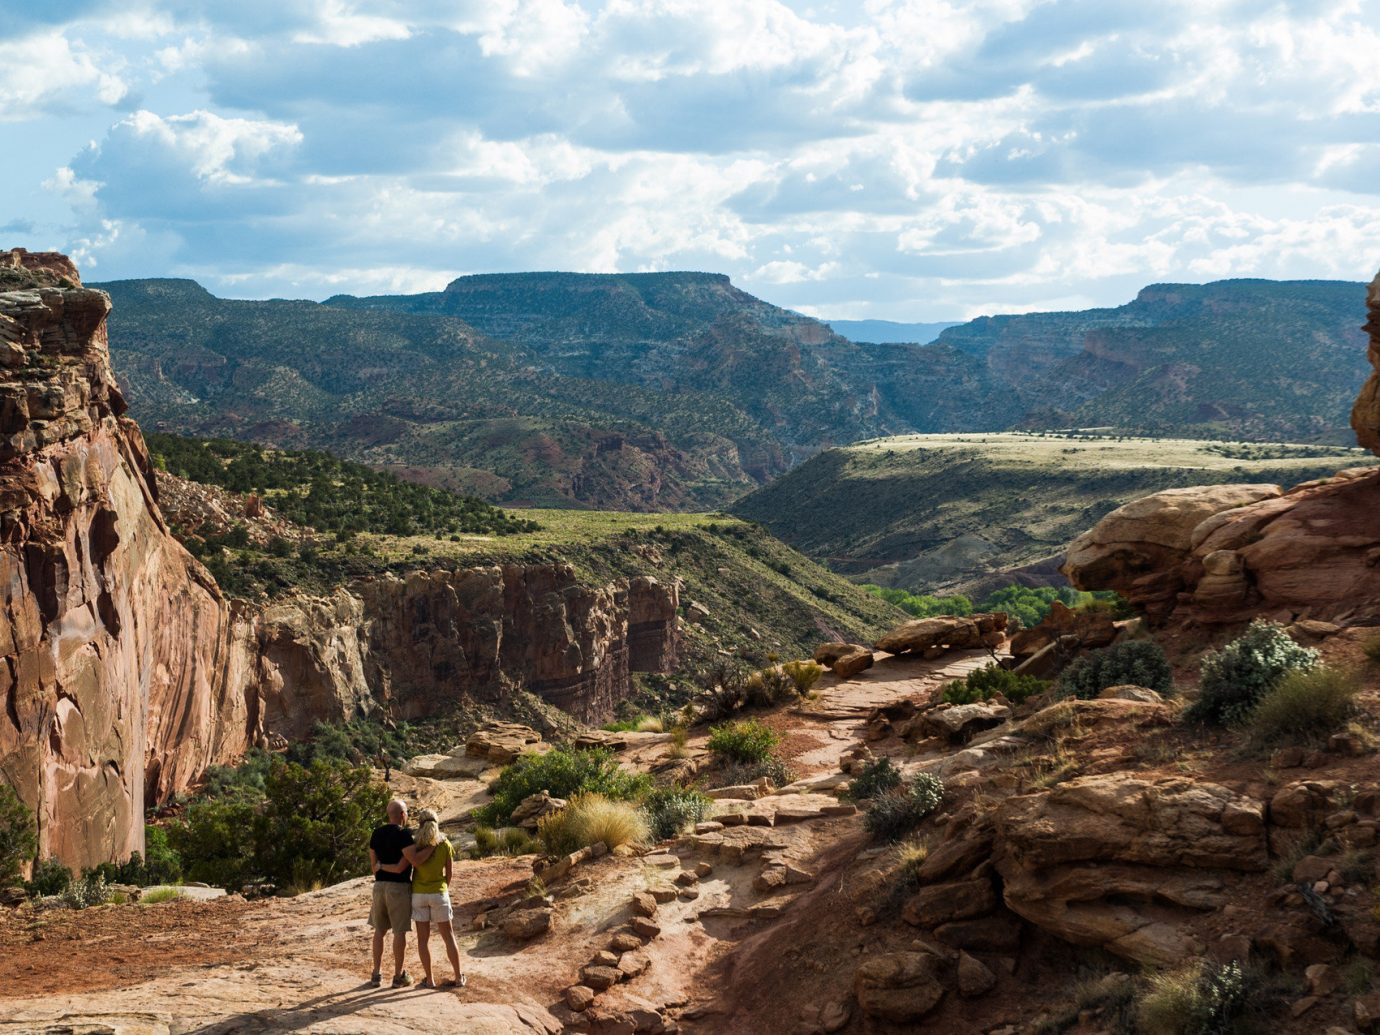 National Parks Outdoors + Adventure Road Trips Trip Ideas mountain outdoor sky valley Nature canyon ground rock geographical feature landform hill rocky badlands wadi tourism geology cliff landscape arch ancient history terrain plateau formation national park park trail hillside dirt